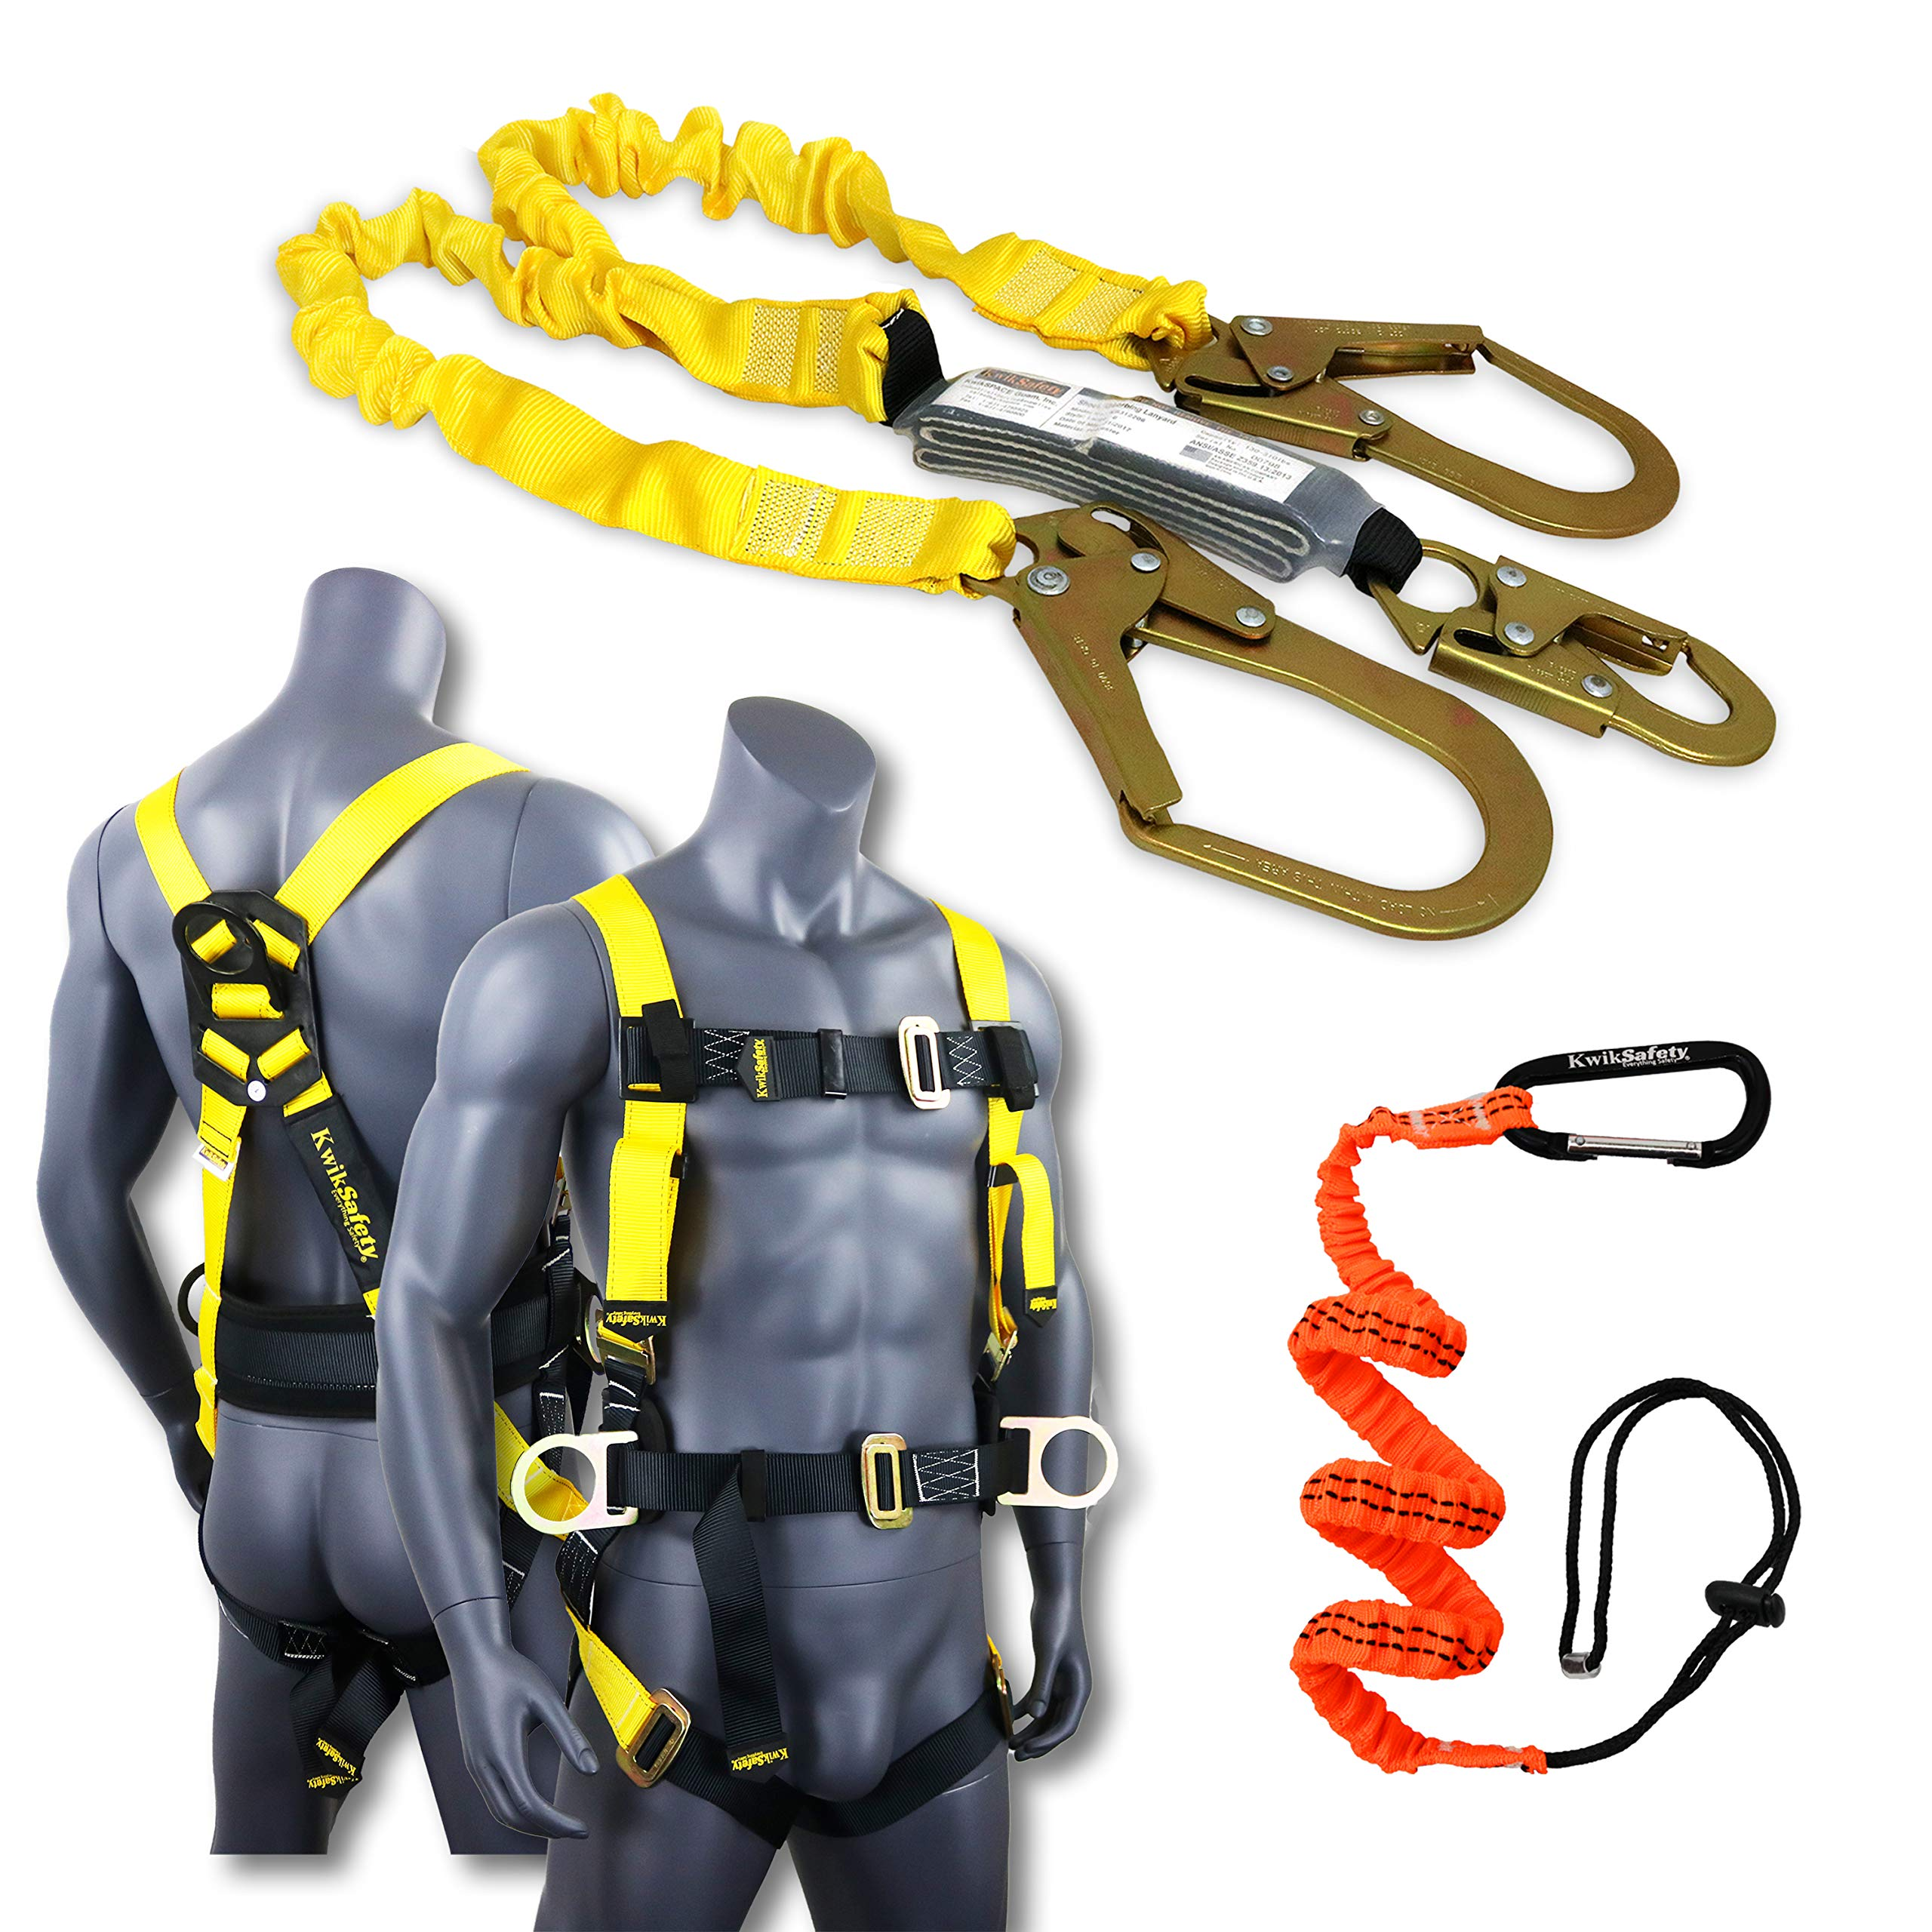 KwikSafety (Charlotte, NC) PYTHON (COMBO) Double Leg 6ft Tubular Stretch Safety Lanyard | OSHA ANSI Fall Protection EXTERNAL Shock Absorber | Construction Arborist Roofing | Snap Rebar Hook Connector by KwikSafety (Image #1)